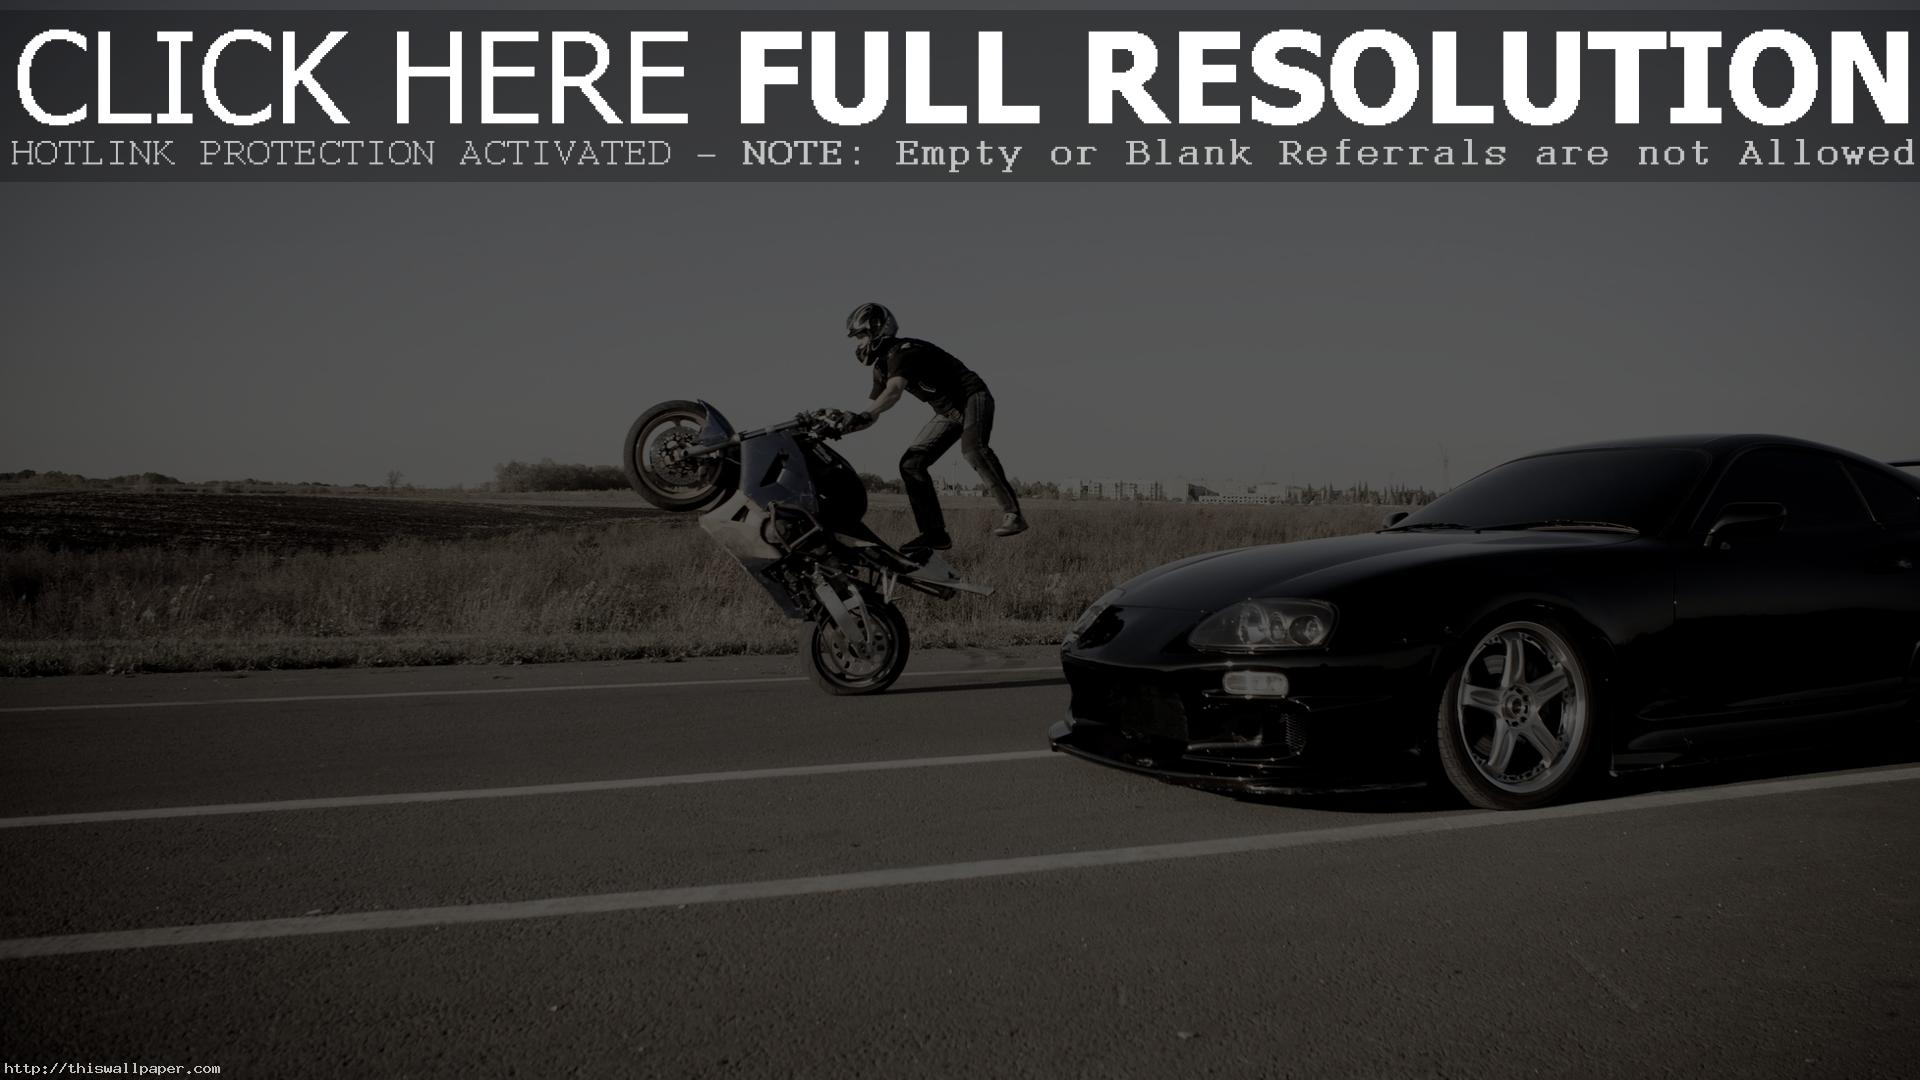 Bike Stunt Wallpaper Free Download